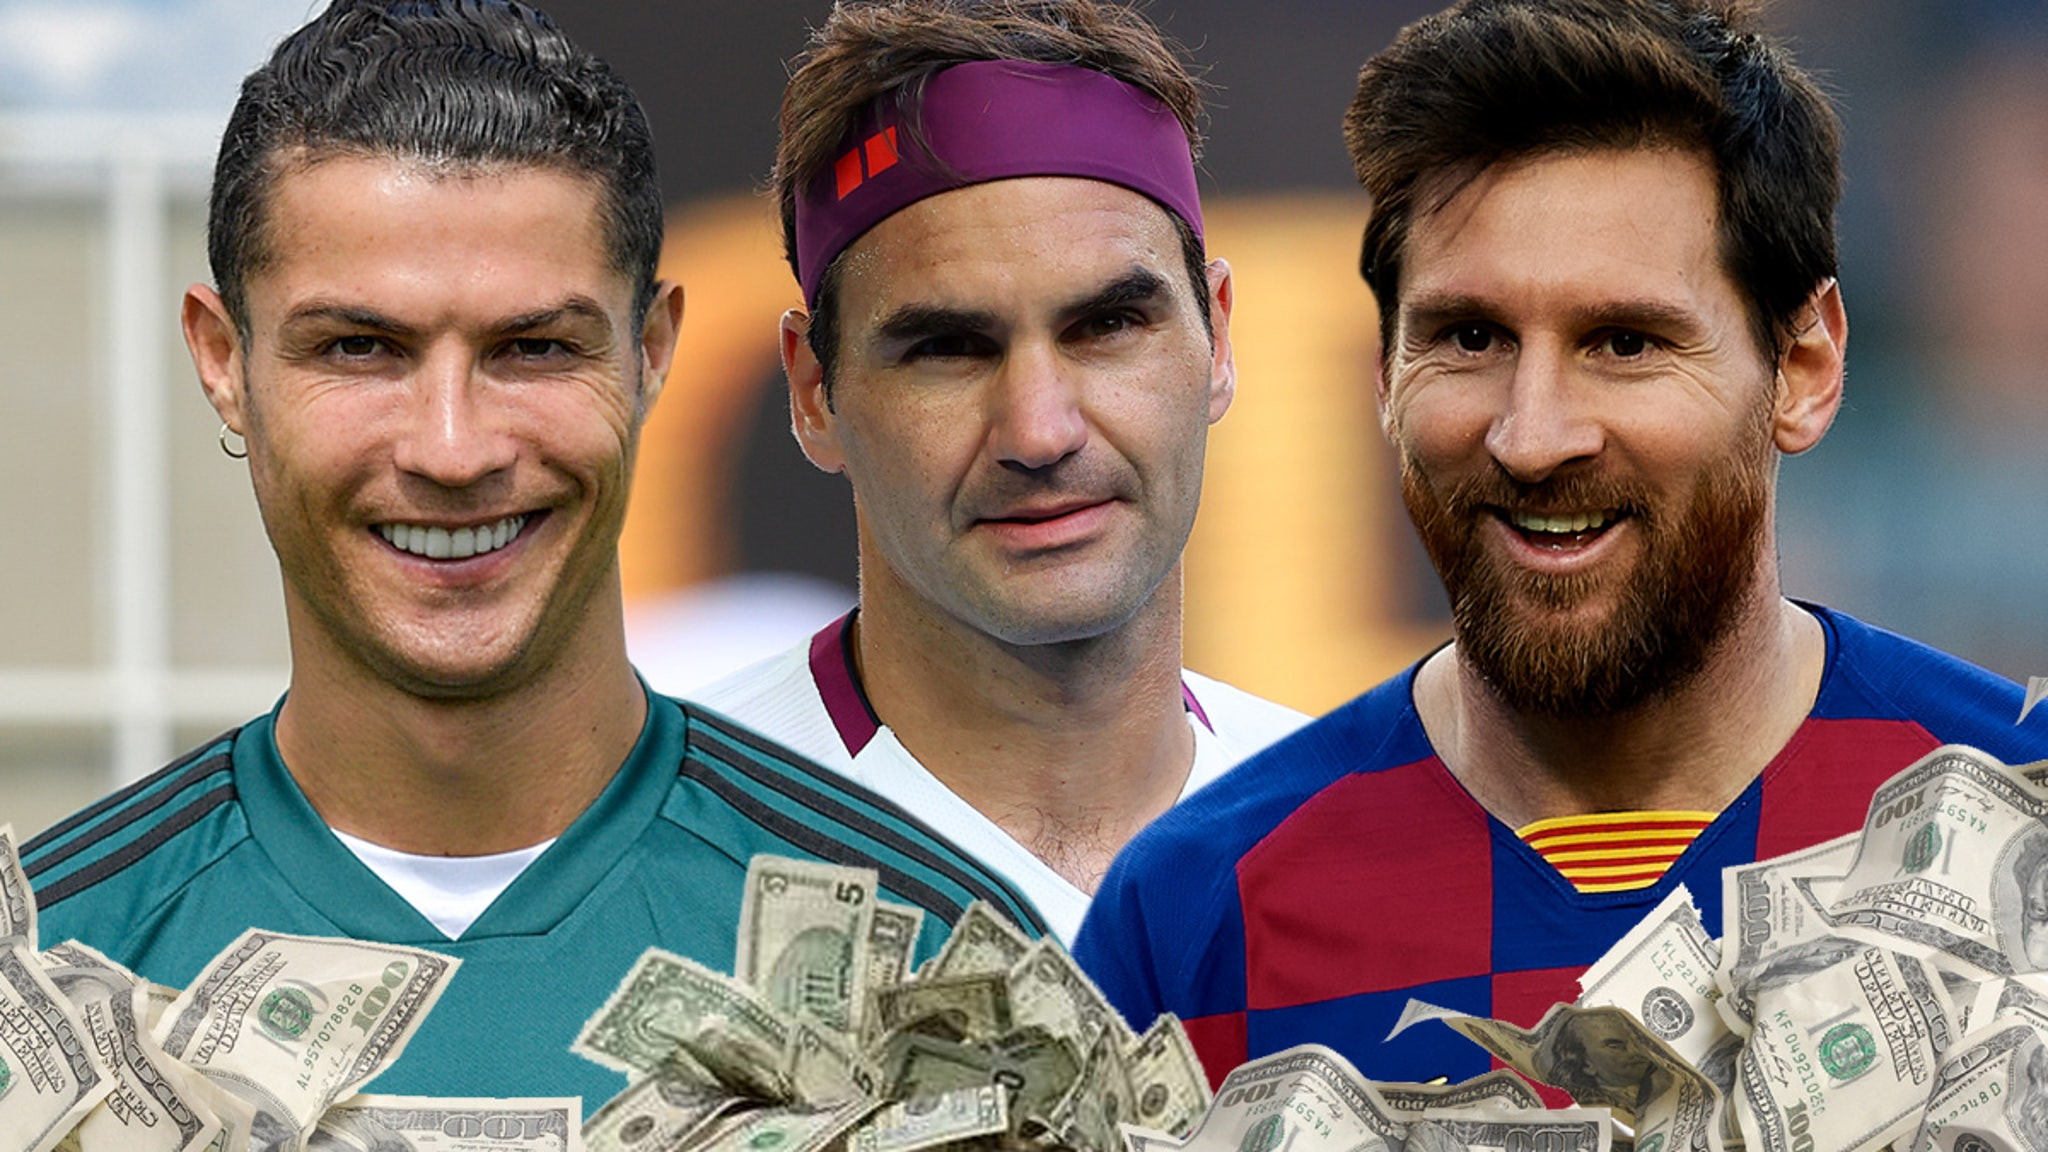 Roger Federer Tops Forbes' Highest-Paid Athlete List Due to COVID Pay Cuts